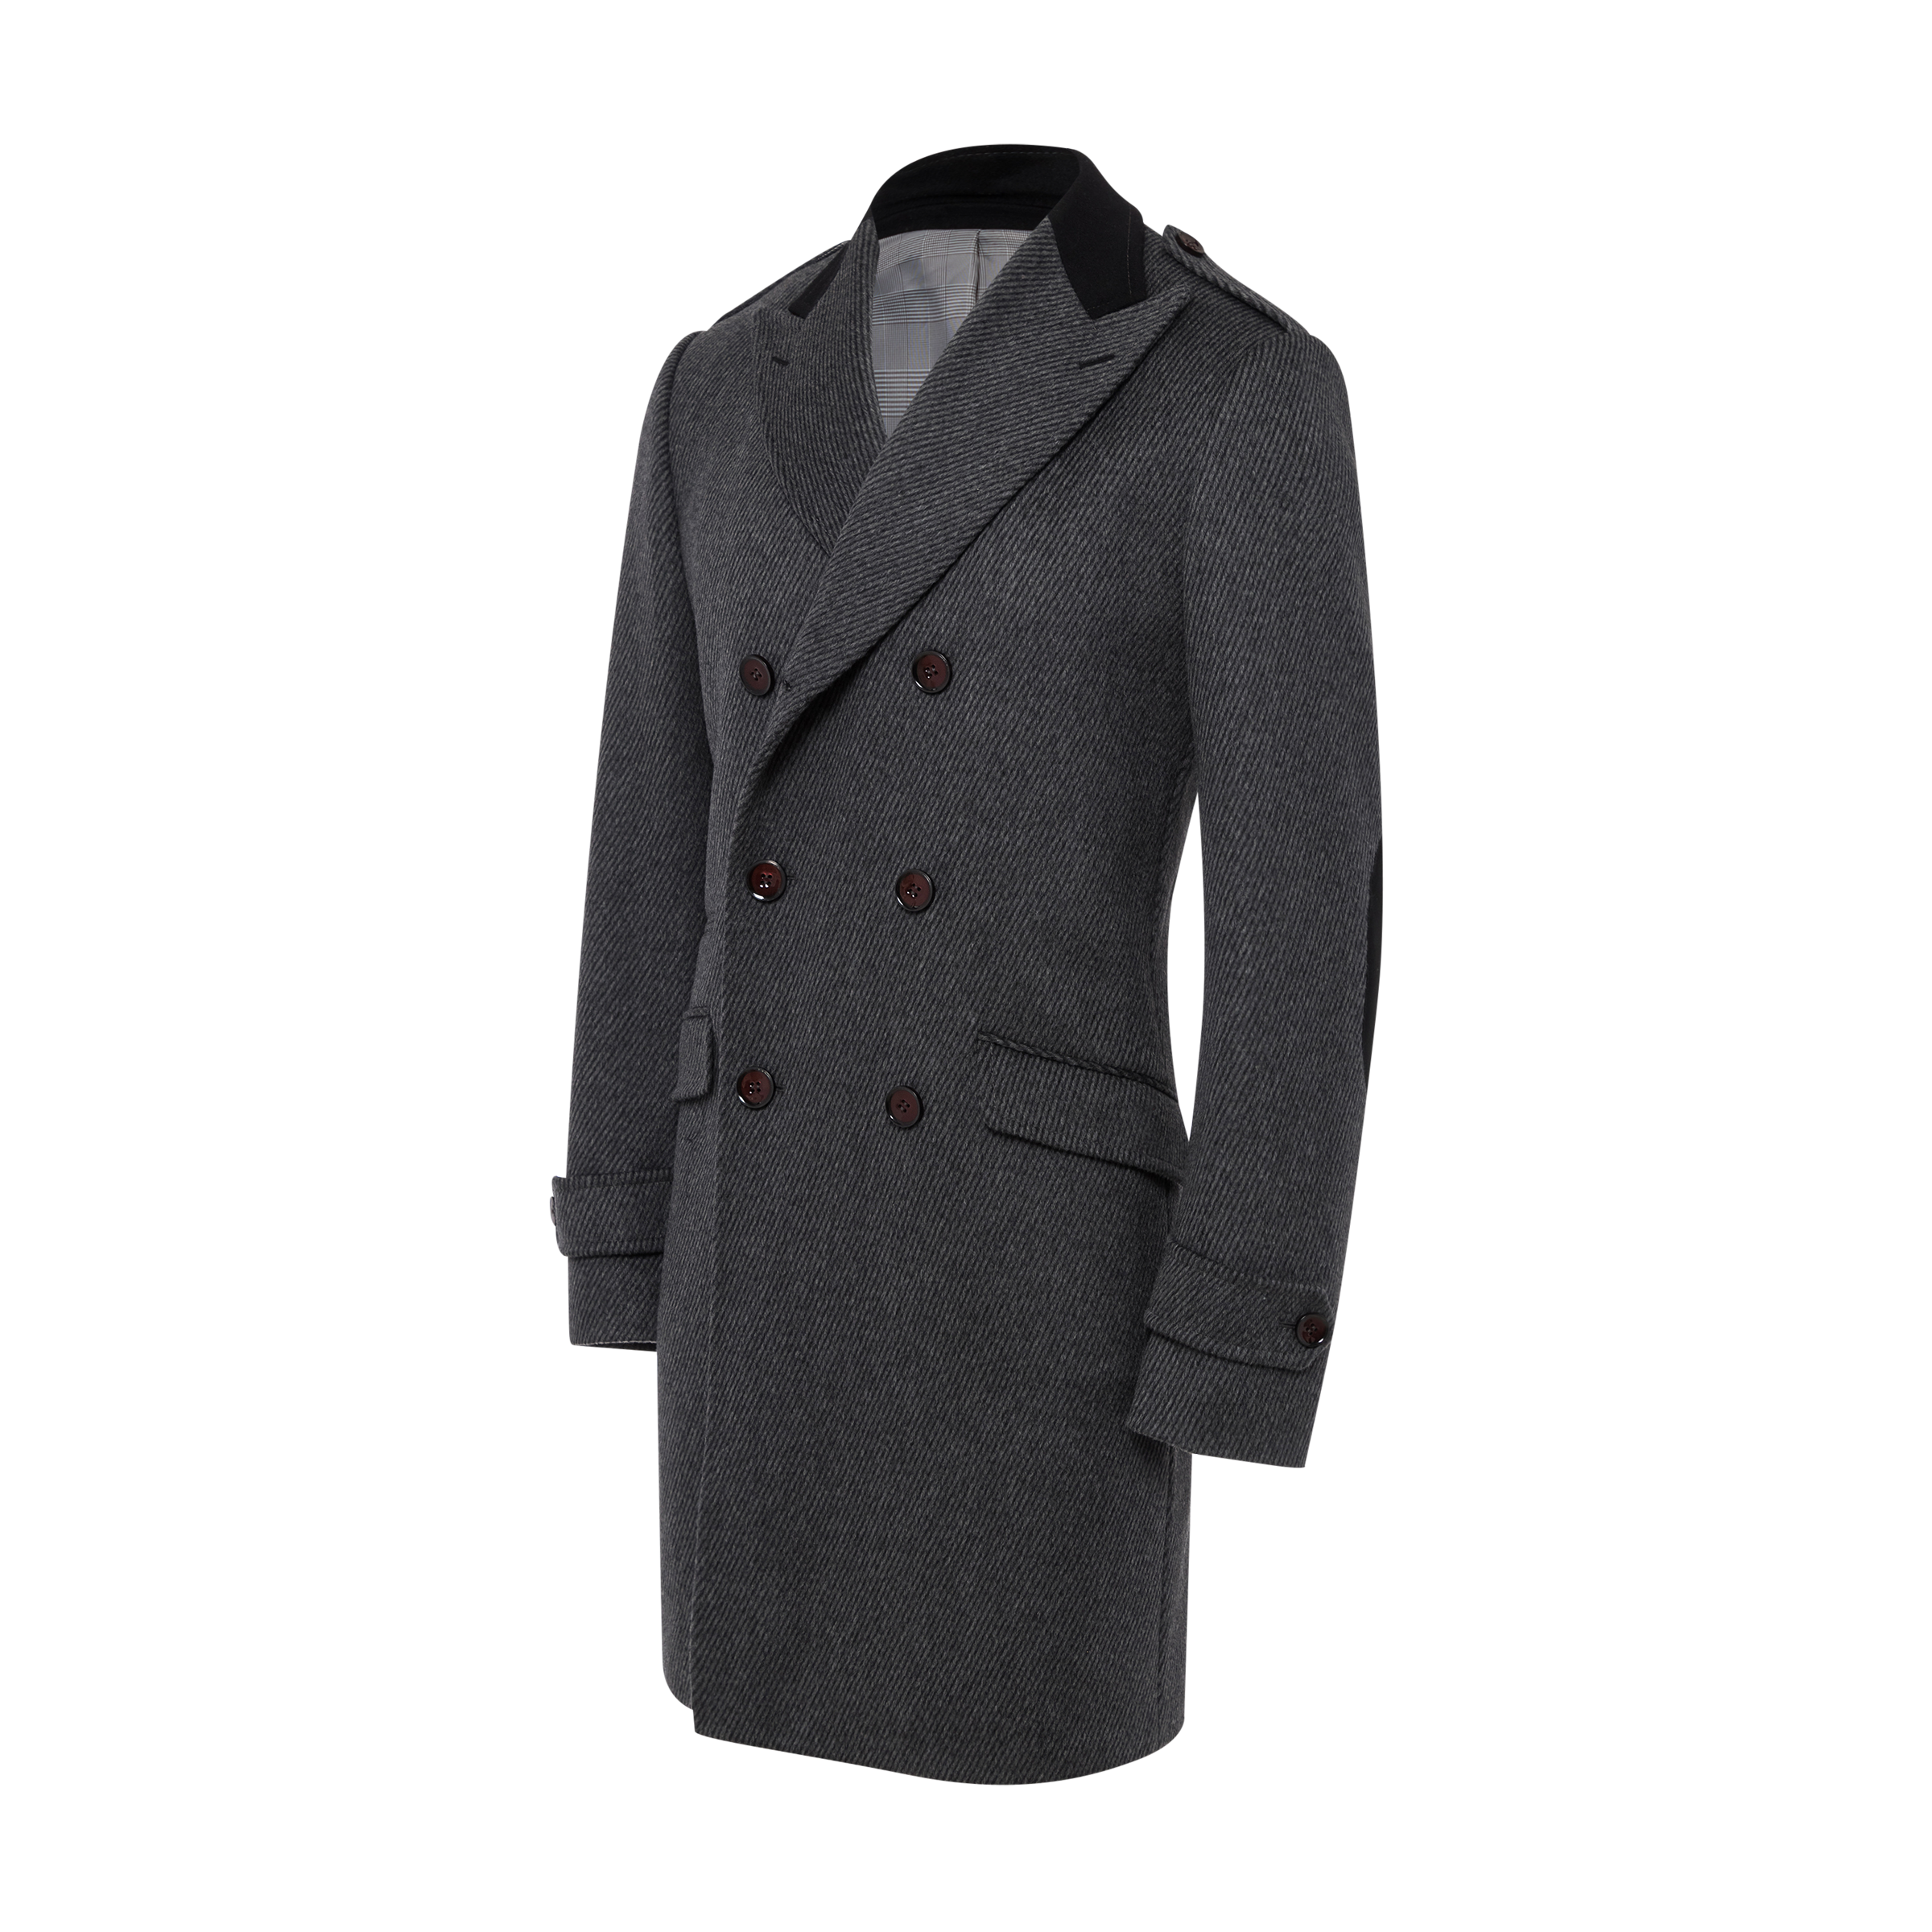 Coats product photography